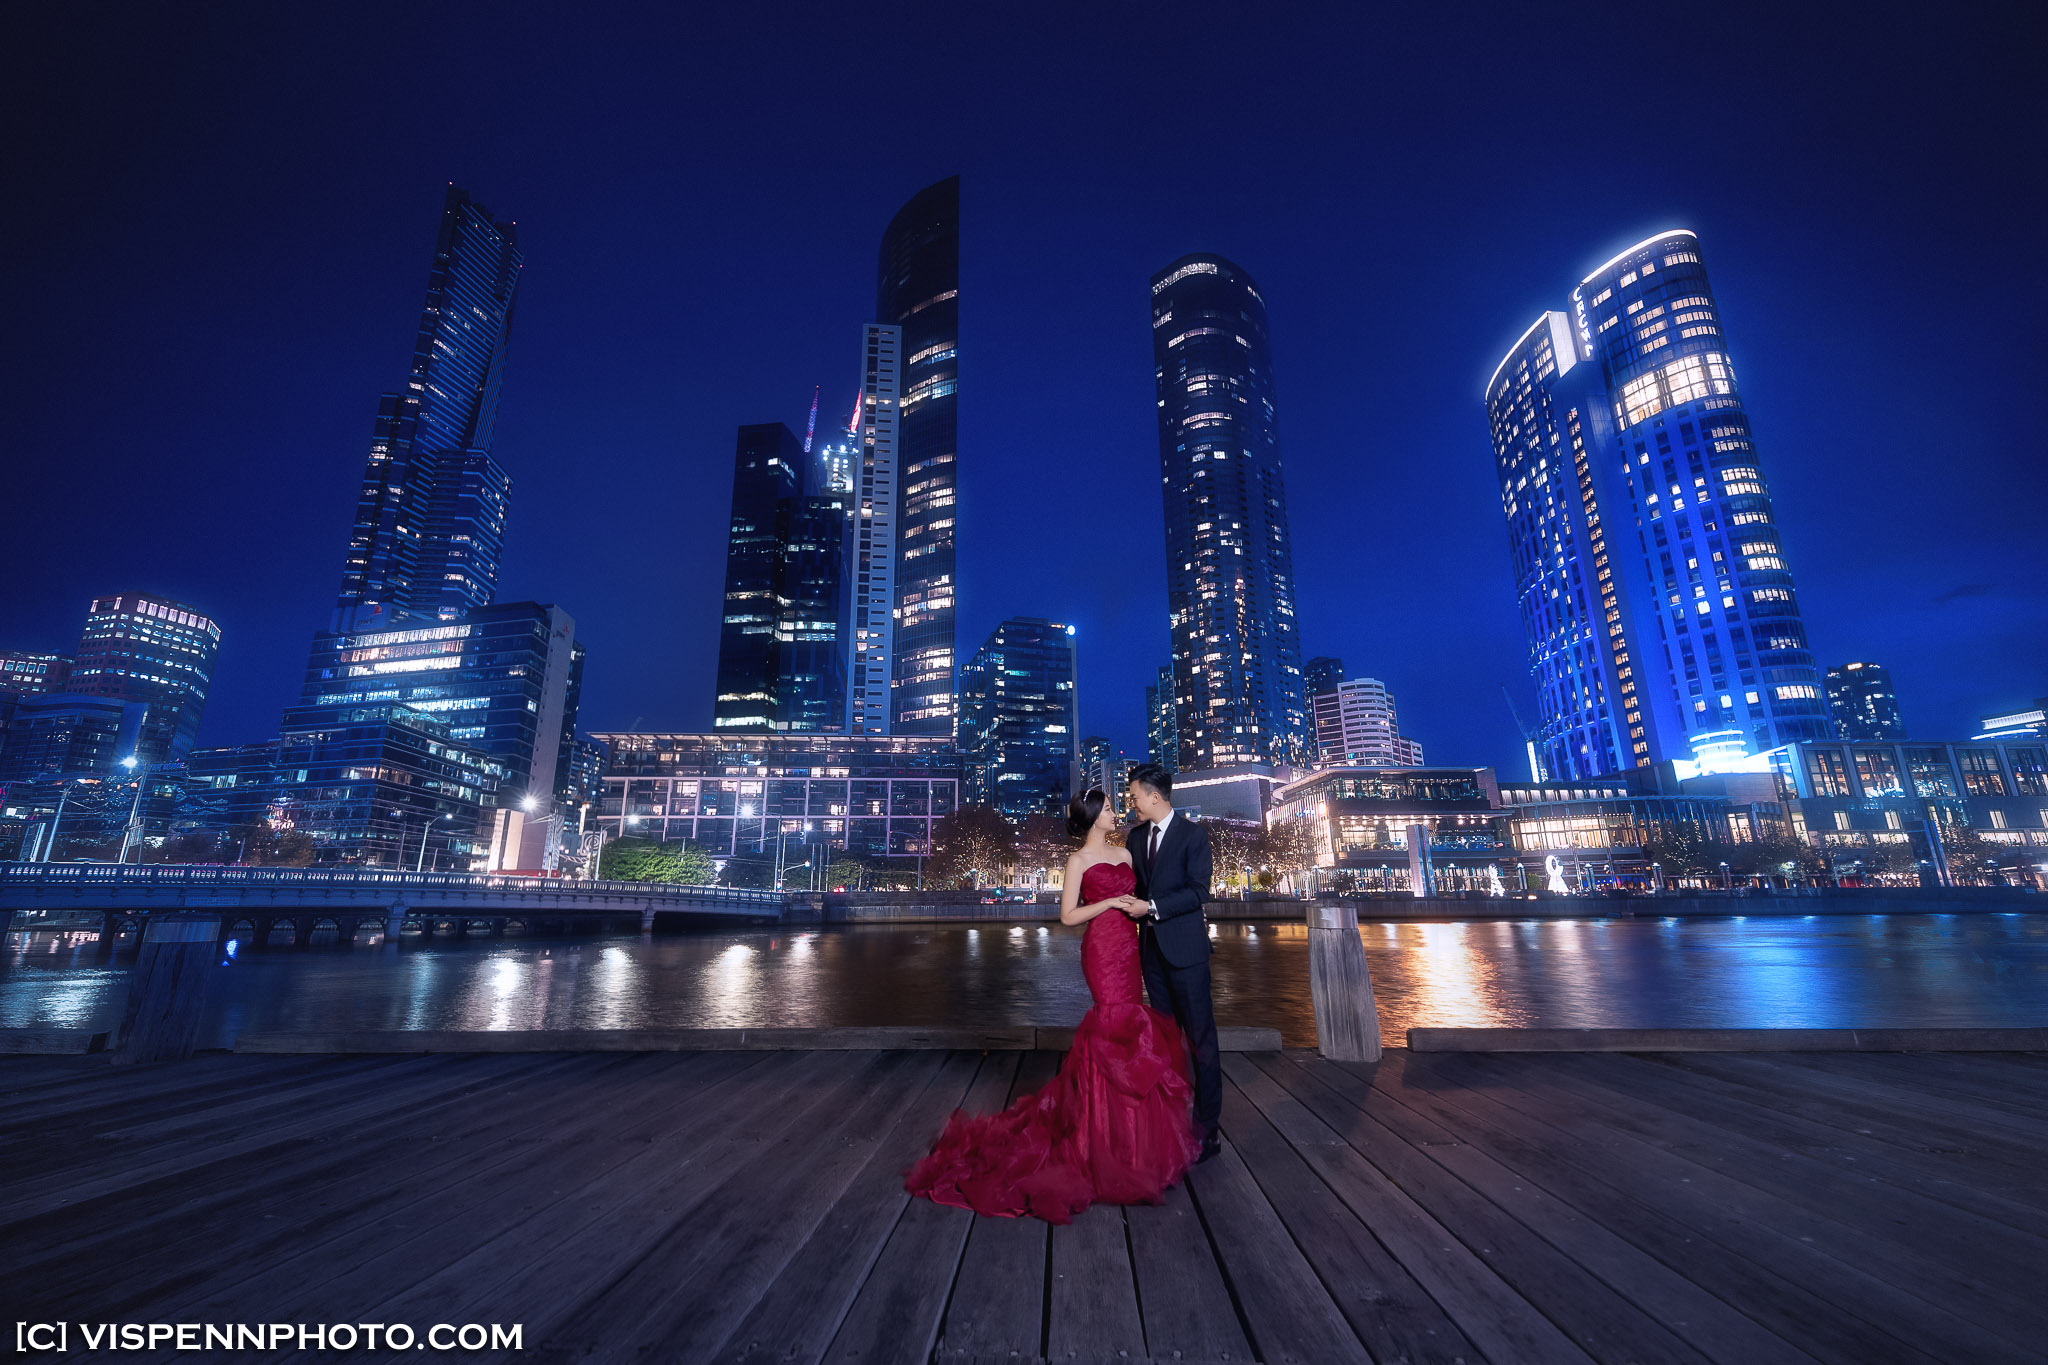 PRE WEDDING Photography Melbourne AndyCHEN 4427 1DX ZHPENN